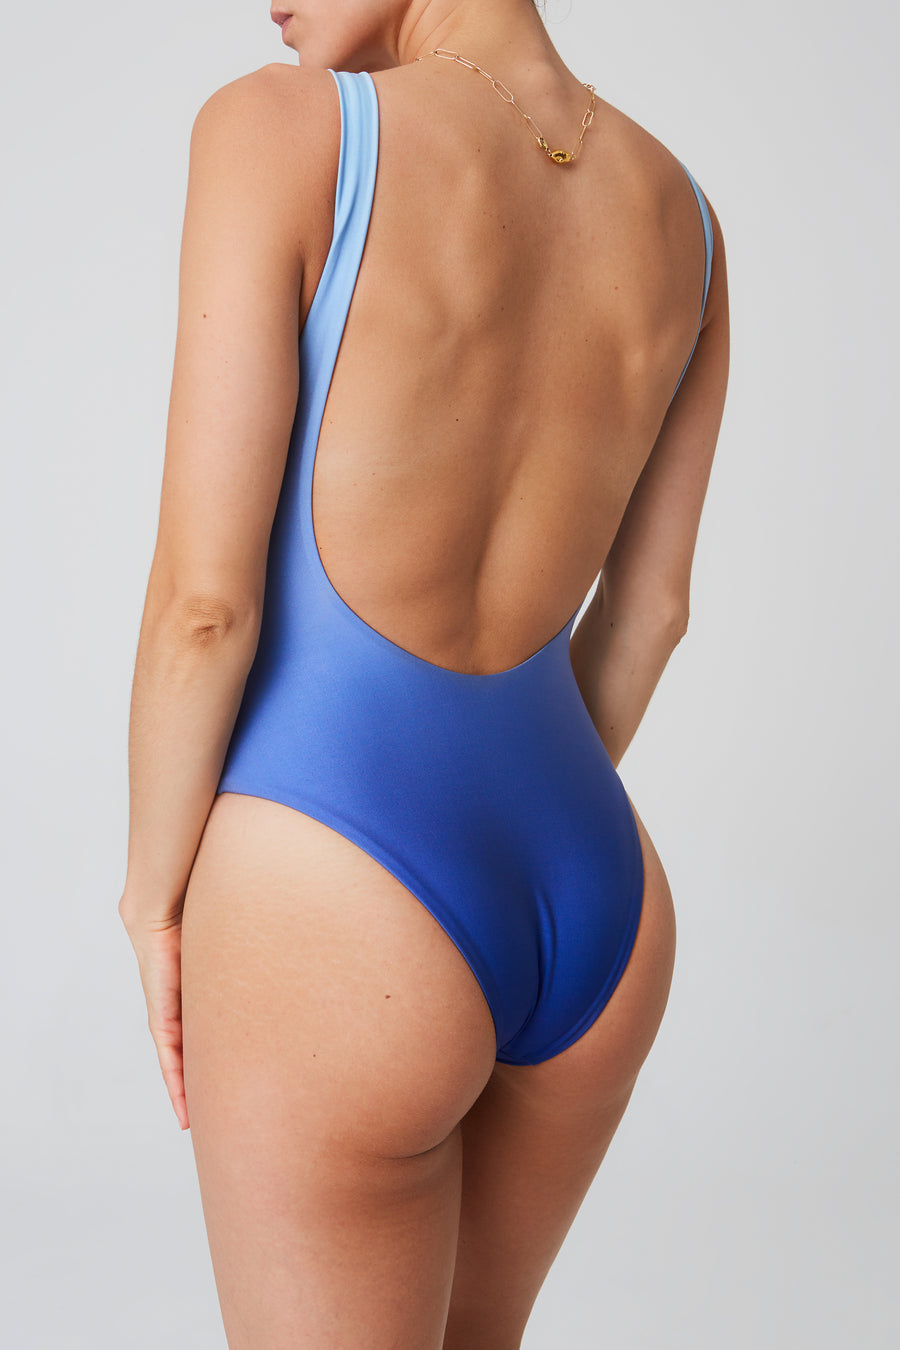 Swimsuit – v-neck, sky